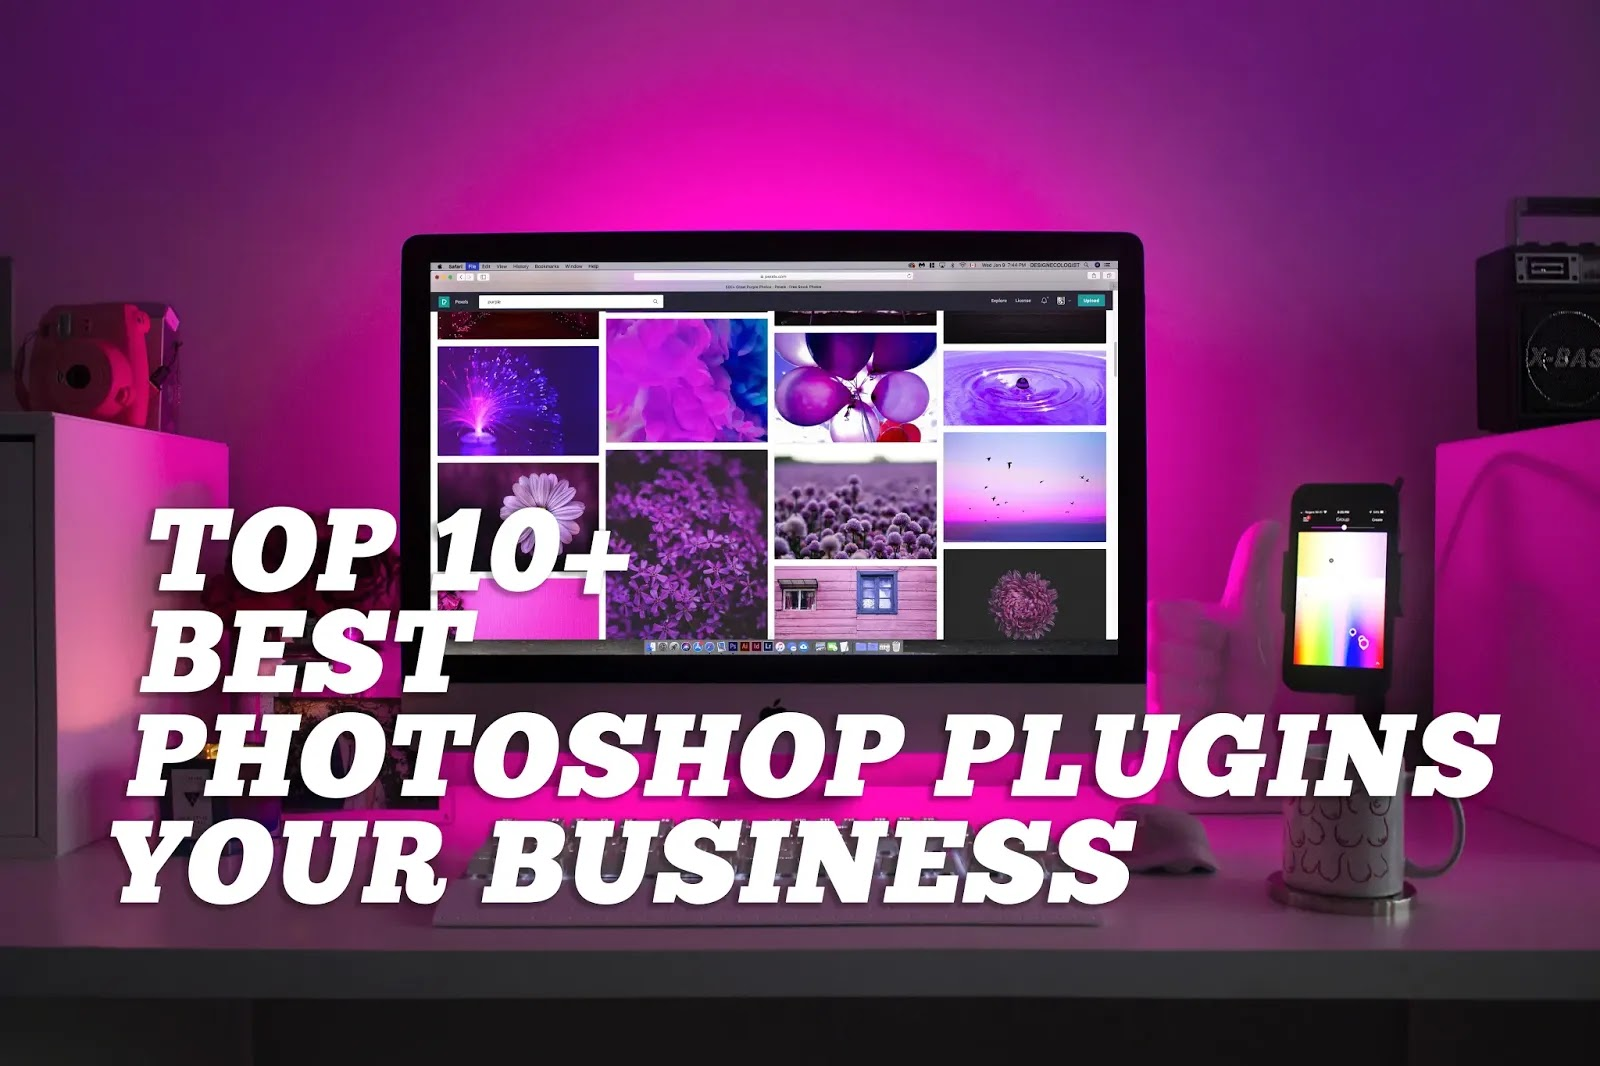 Top 10+ Best Photoshop Plugins your Business